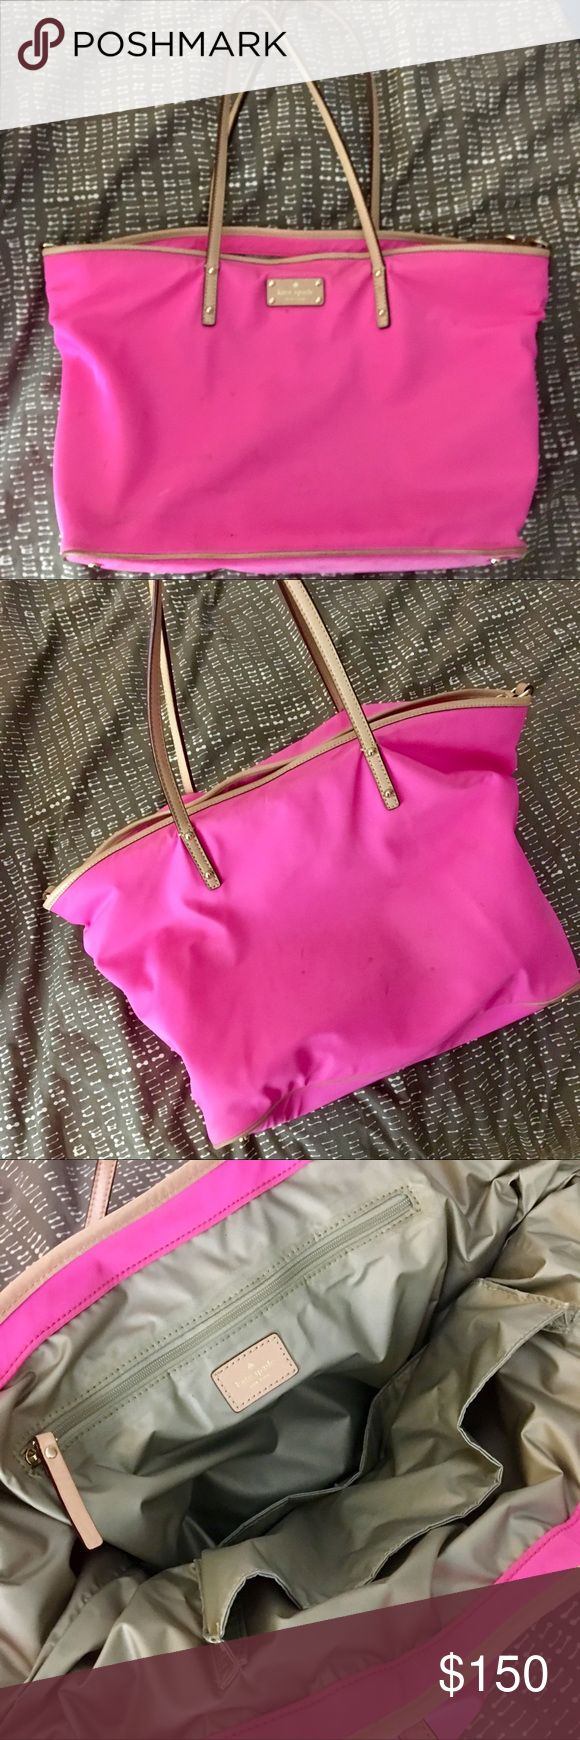 Kate Spade Nylon Tote Bag- pink Tons of pockets inside. Made of a very easy to clean nylon fabric. kate spade Bags Totes